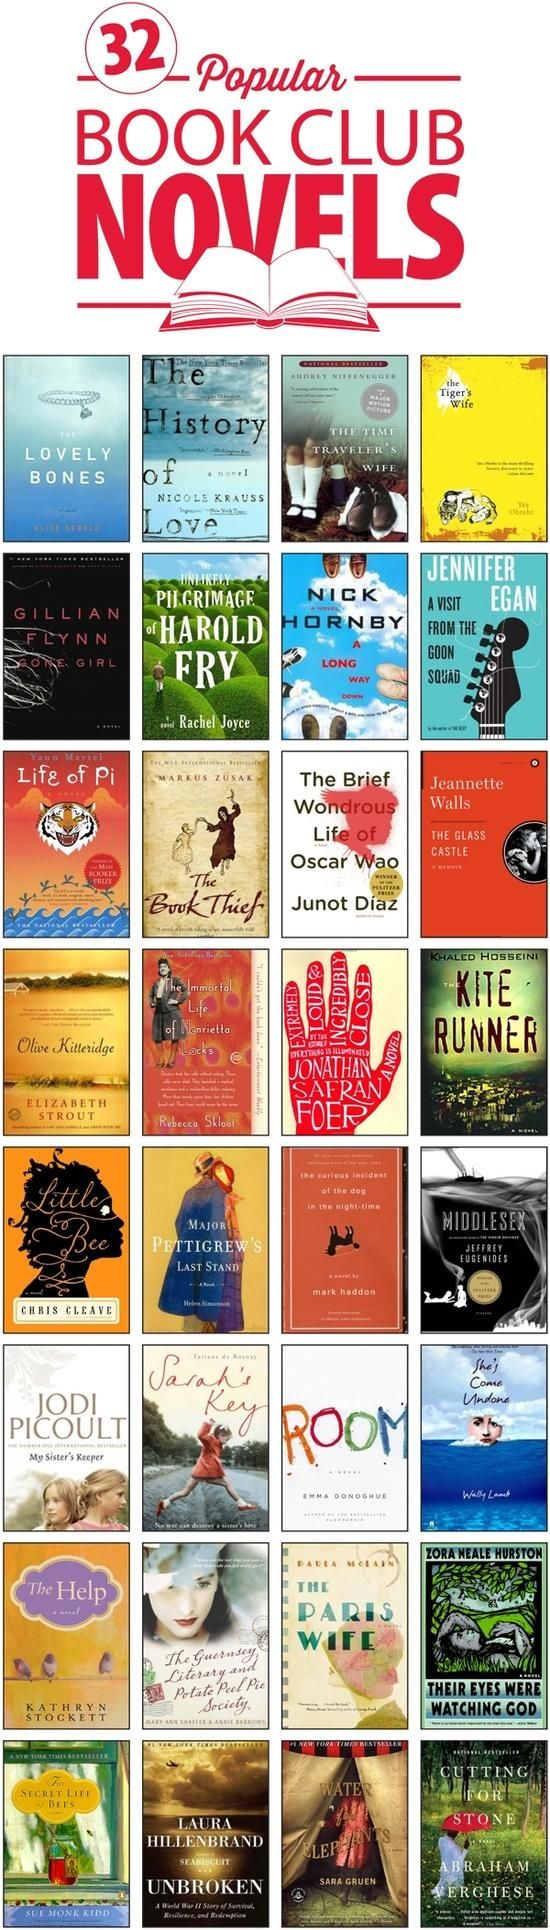 Top 32 Popular Fiction Books for Book Clubs - Have read several and have a couple more in my stacks to read